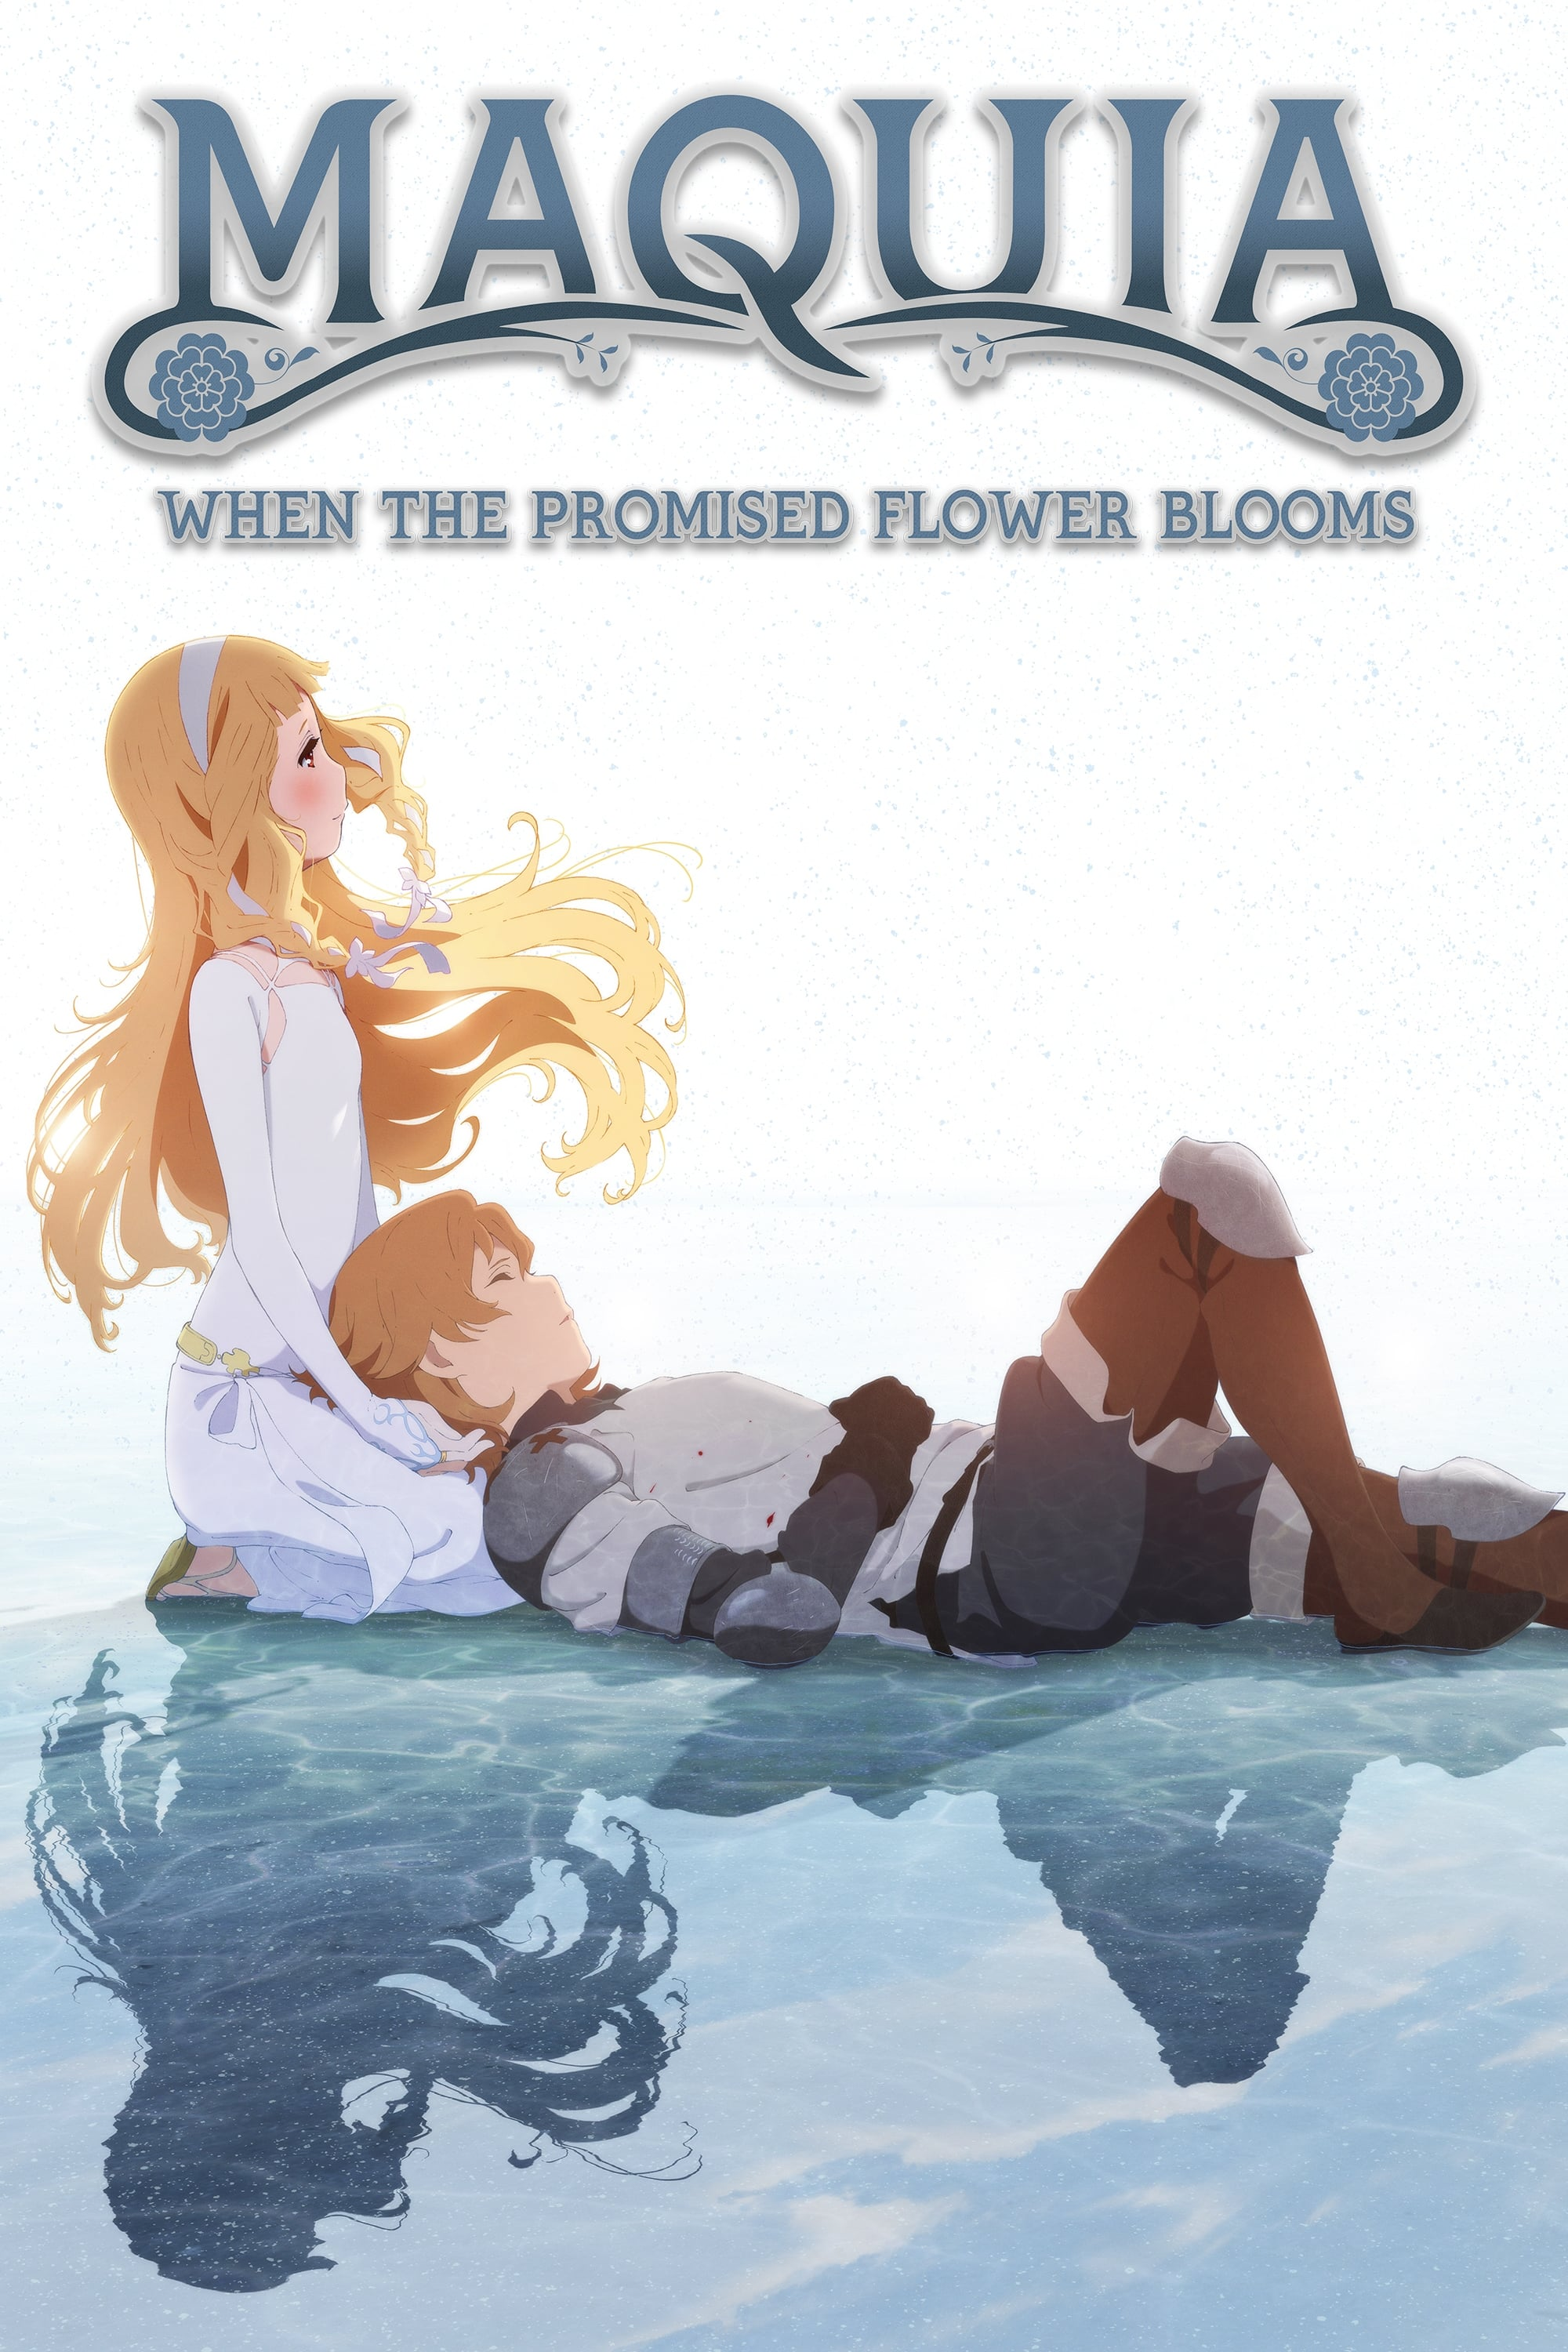 Guardare Streaming Maquia - When The Promised Flower Blooms Streaming Ita